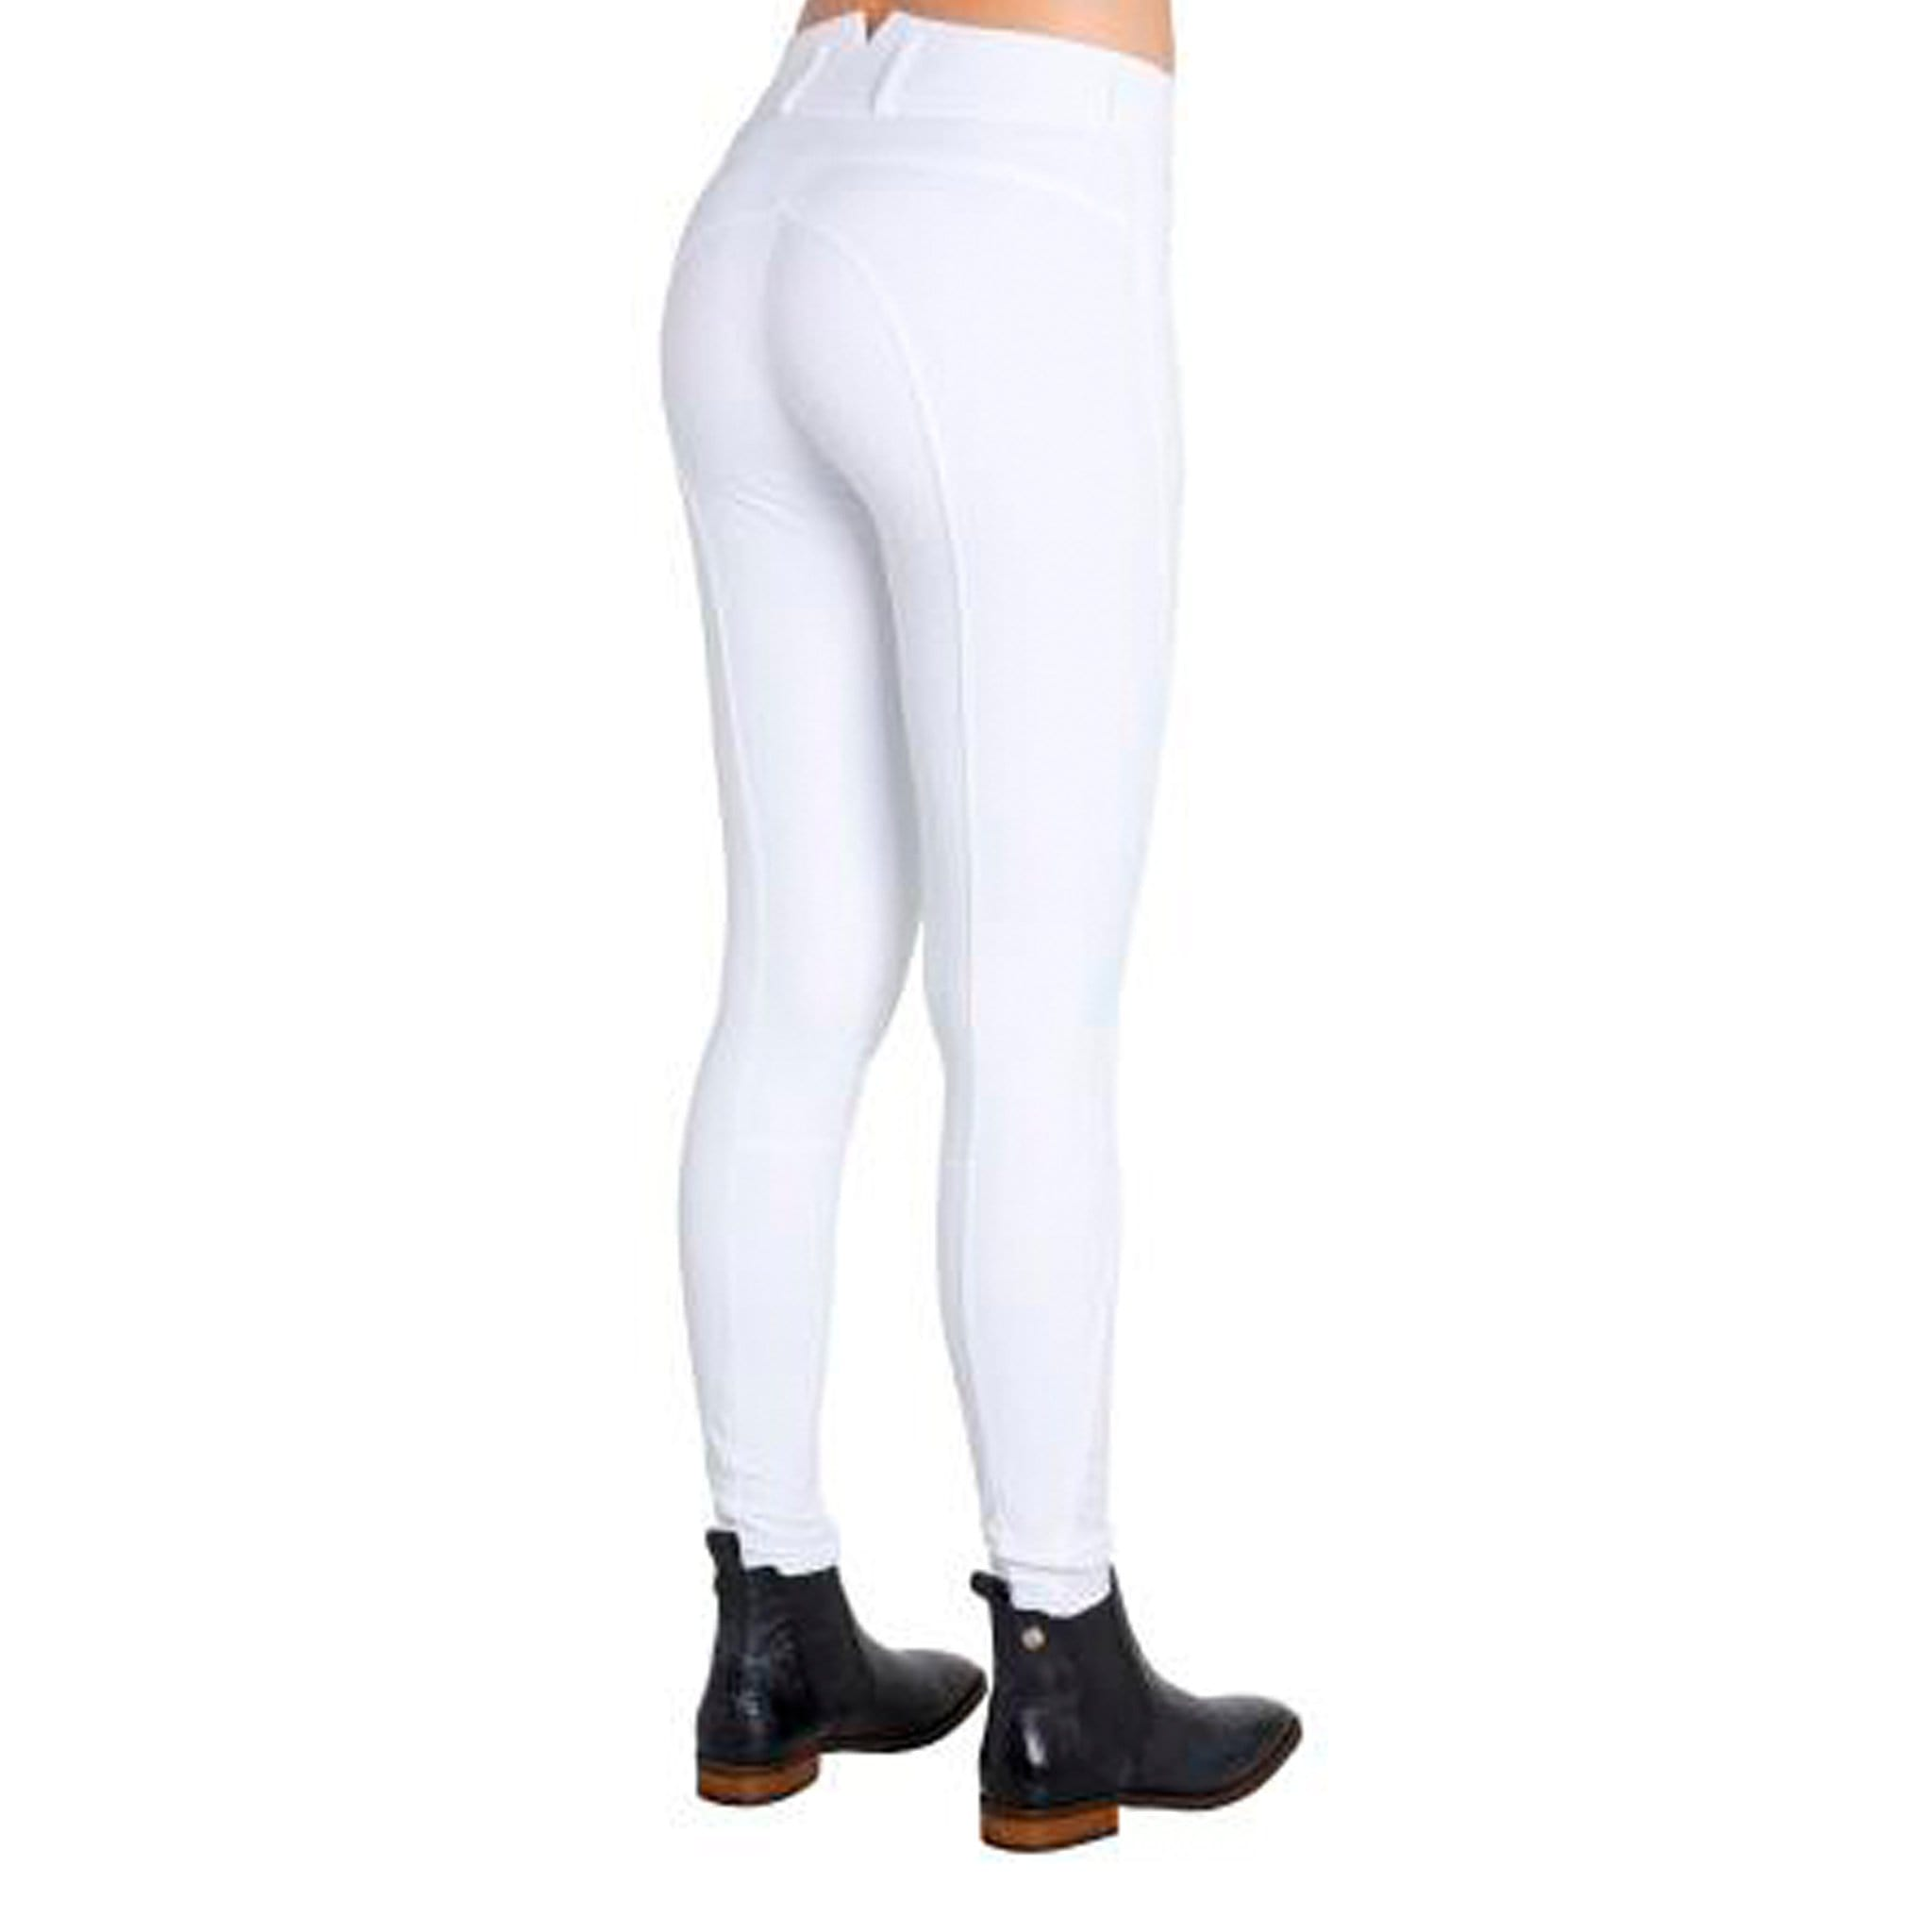 Montar High Waist Silicone Full Seat Breeches White Studio 2078